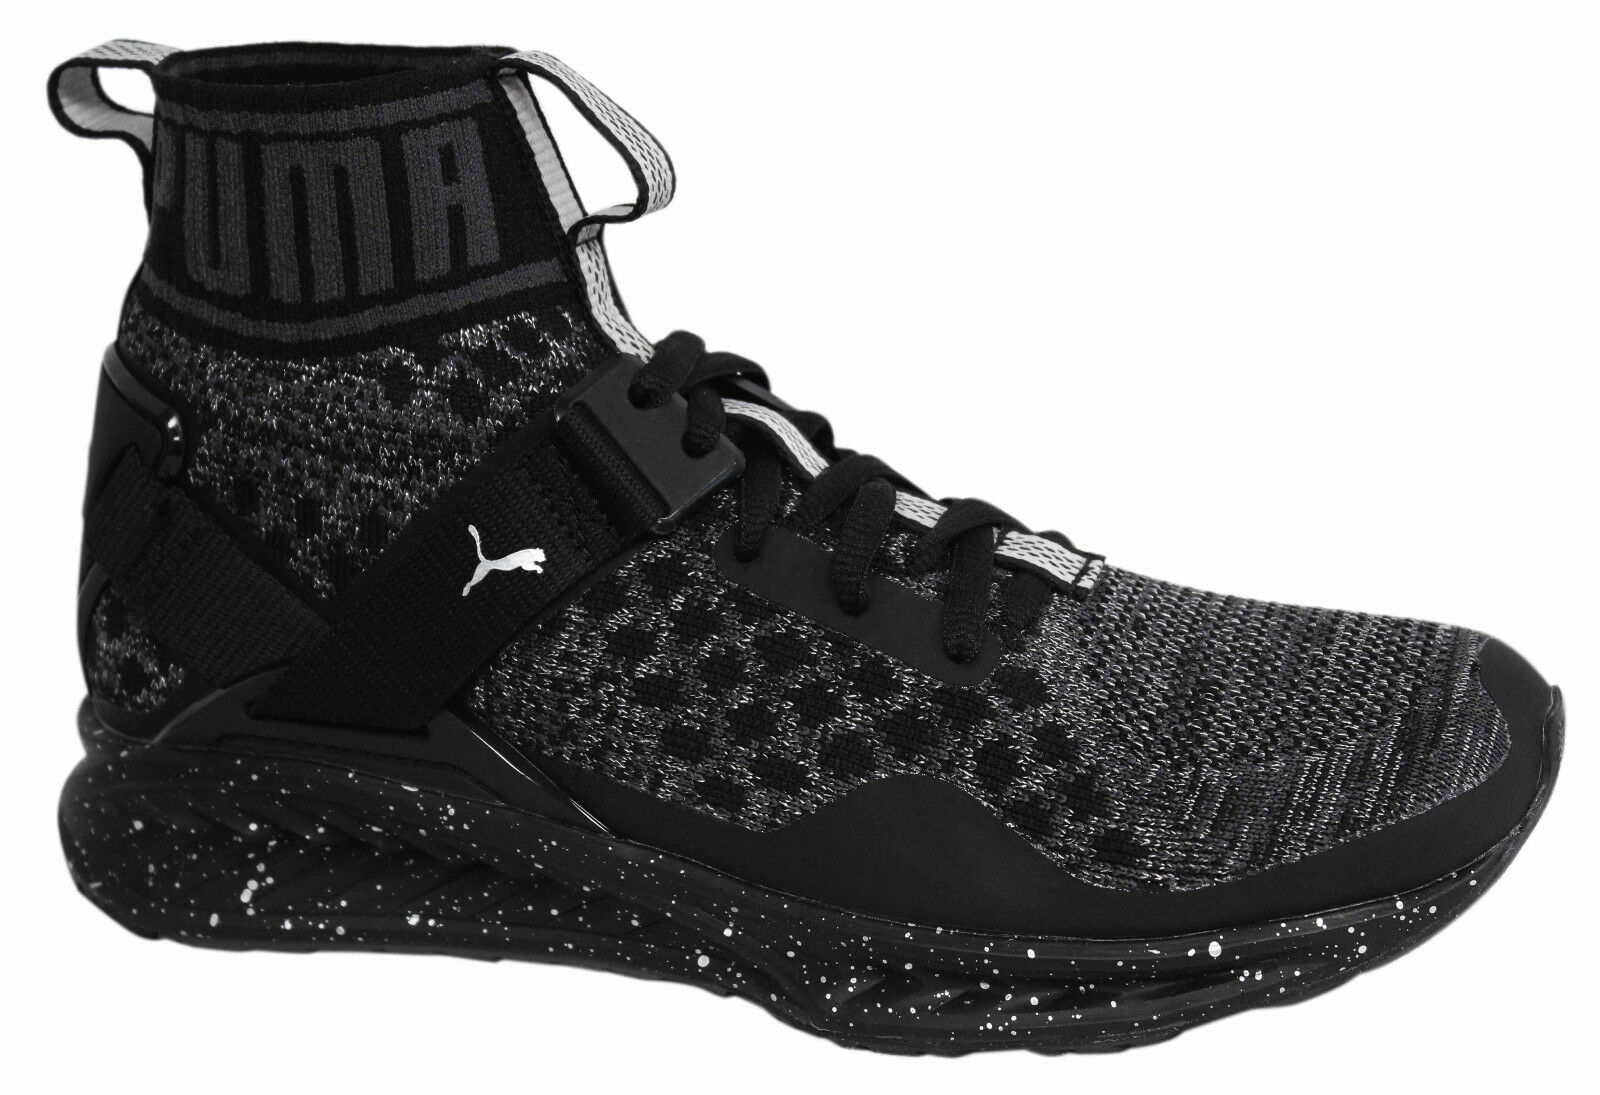 Puma Ignite evoKNIT Metal Lace Up Womens Mid shoes shoes shoes Trainers 189896 01 M14 5ad969